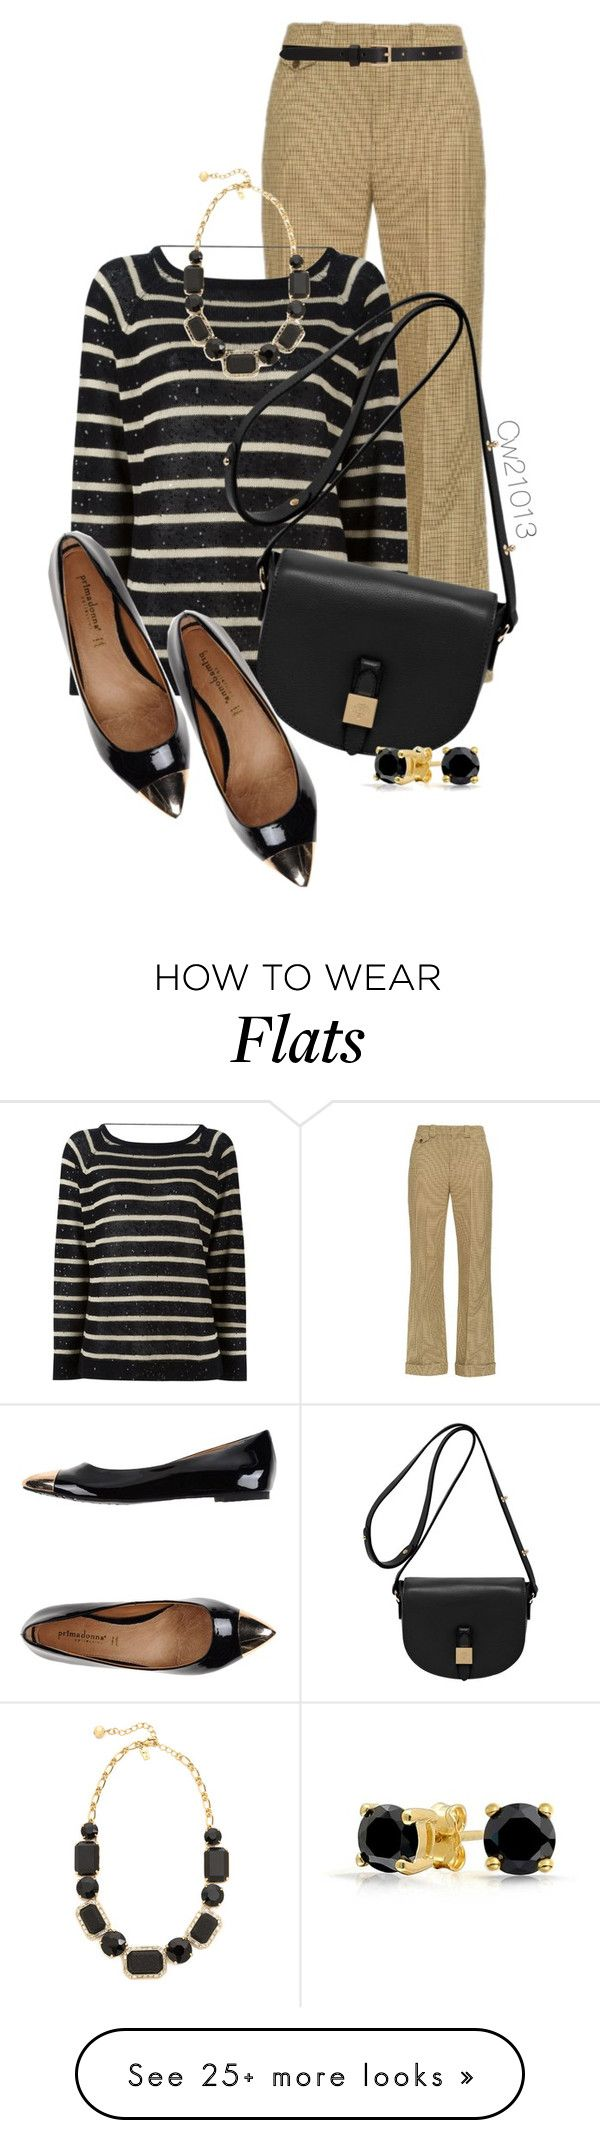 """""""Untitled #1569"""" by cw21013 on Polyvore featuring Chloé, Brunello Cucinelli, Barneys New York, Mulberry, PrimaDonna, Kate Spade and Bling Jewelry"""